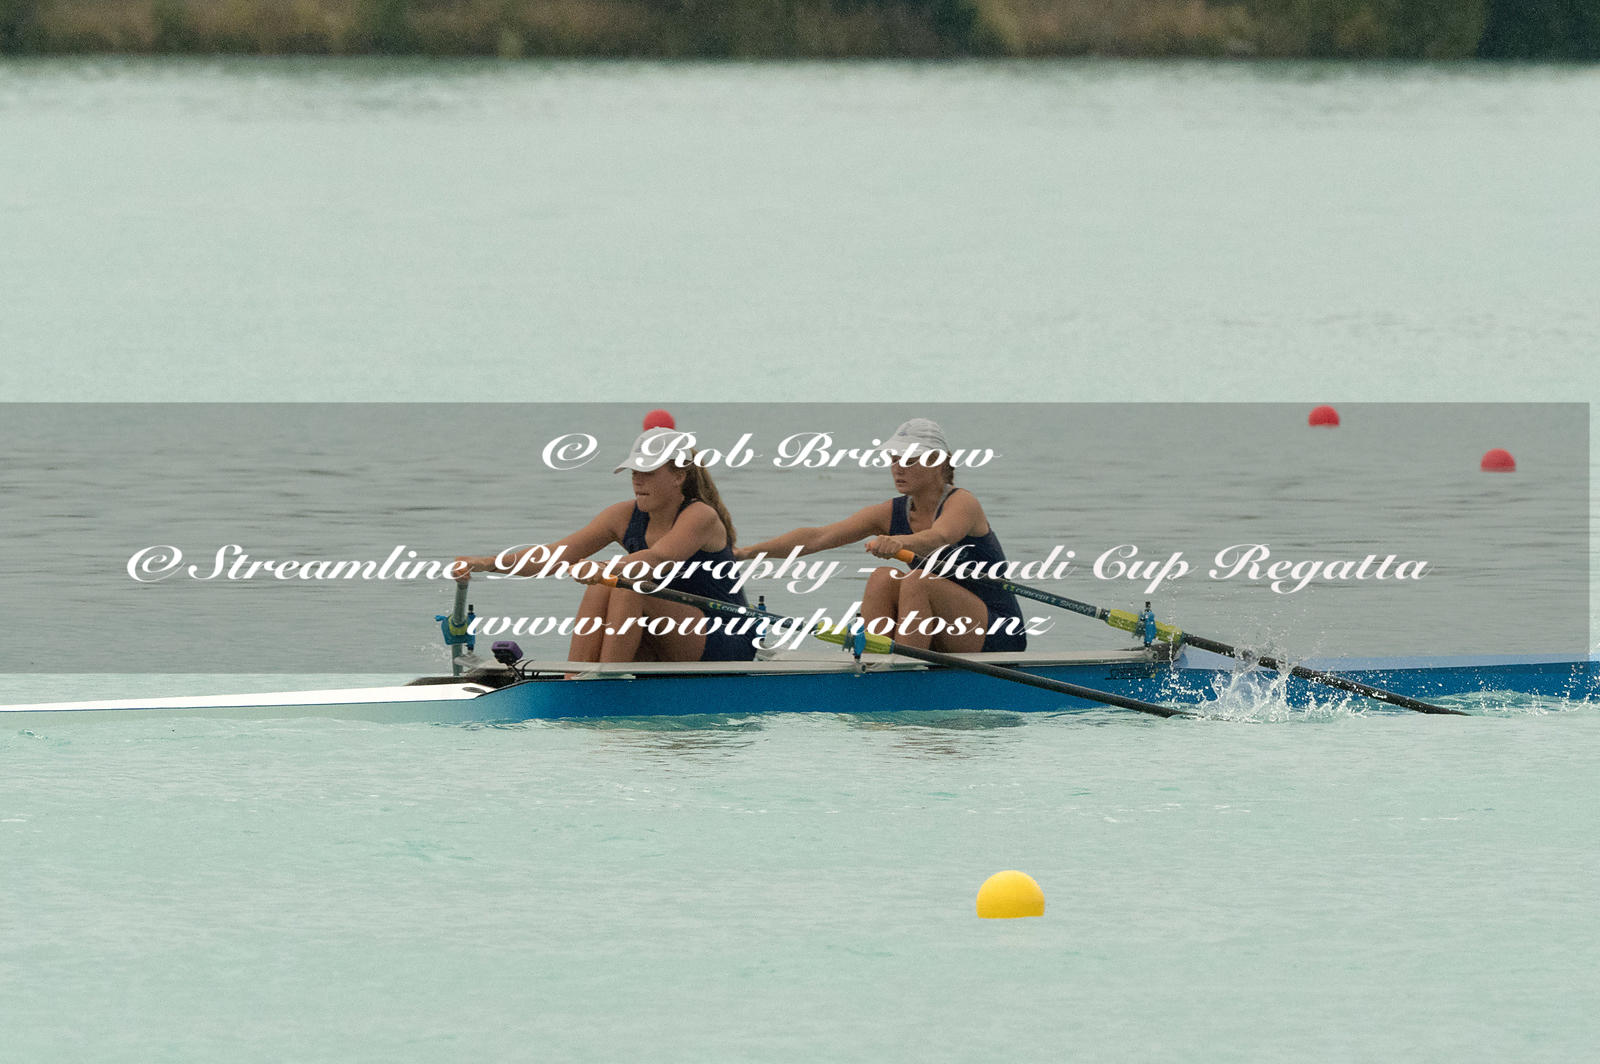 Taken during the Maadi Cup Regatta 2018, Lake Ruataniwha, Twizel, New Zealand; ©  Rob Bristow; Frame 1898 - Taken on: Wednesd...